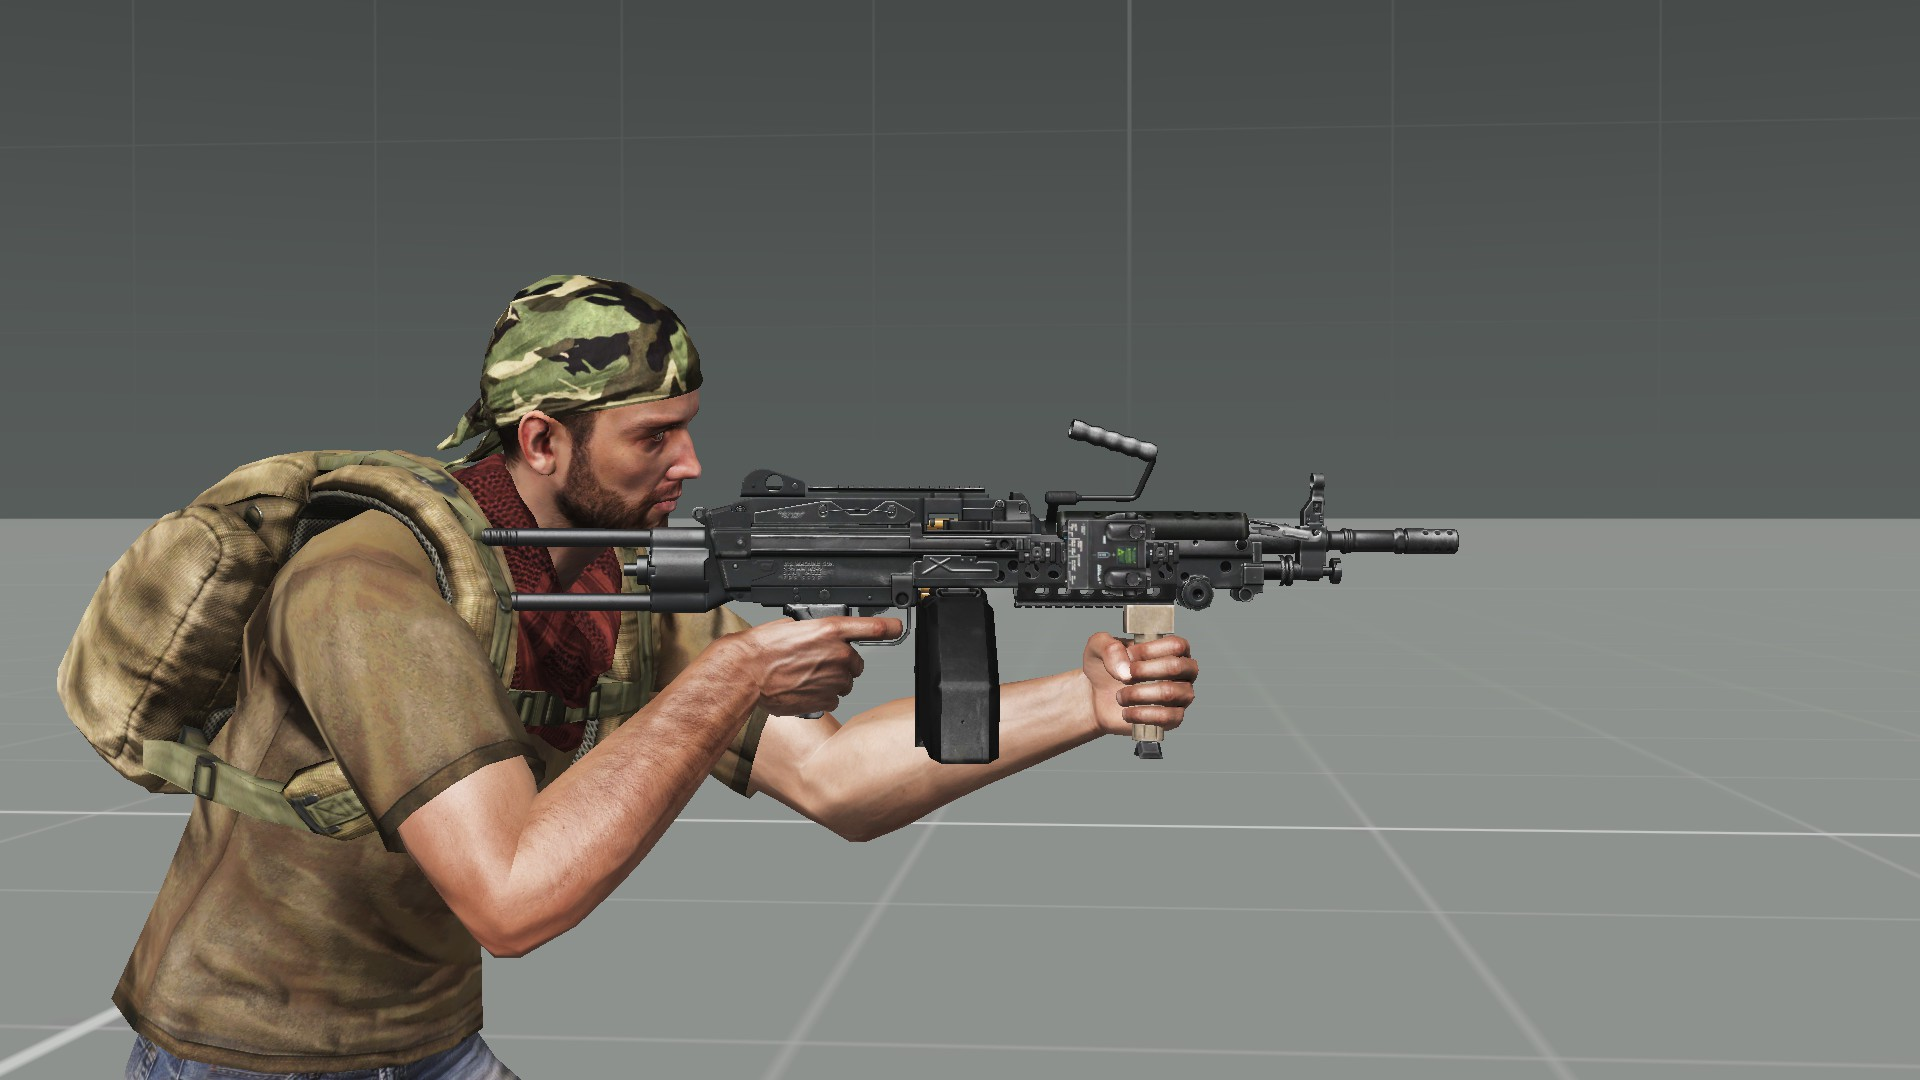 how to change name in arma 3 apex